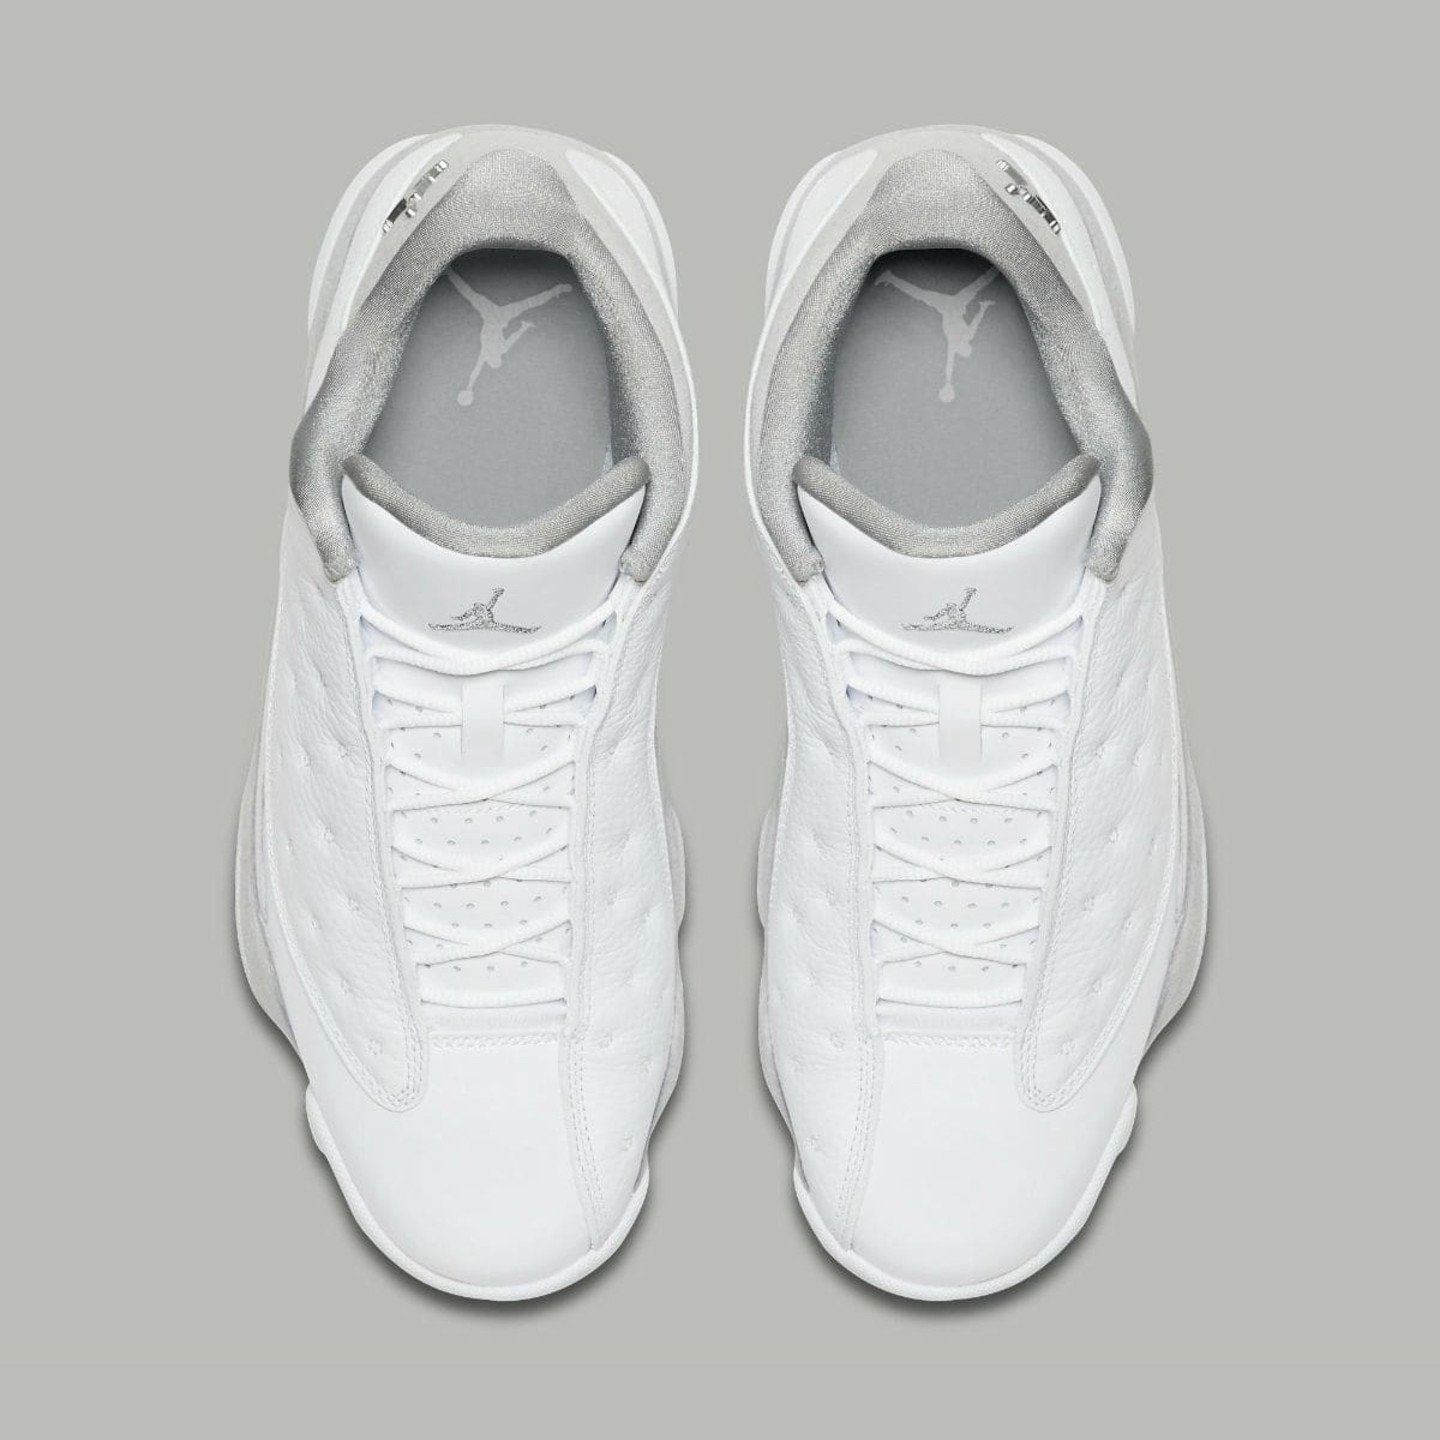 Jordan Air Jordan 13 Retro Low 'Pure Money' White / Metallic Silver 310810-100-44